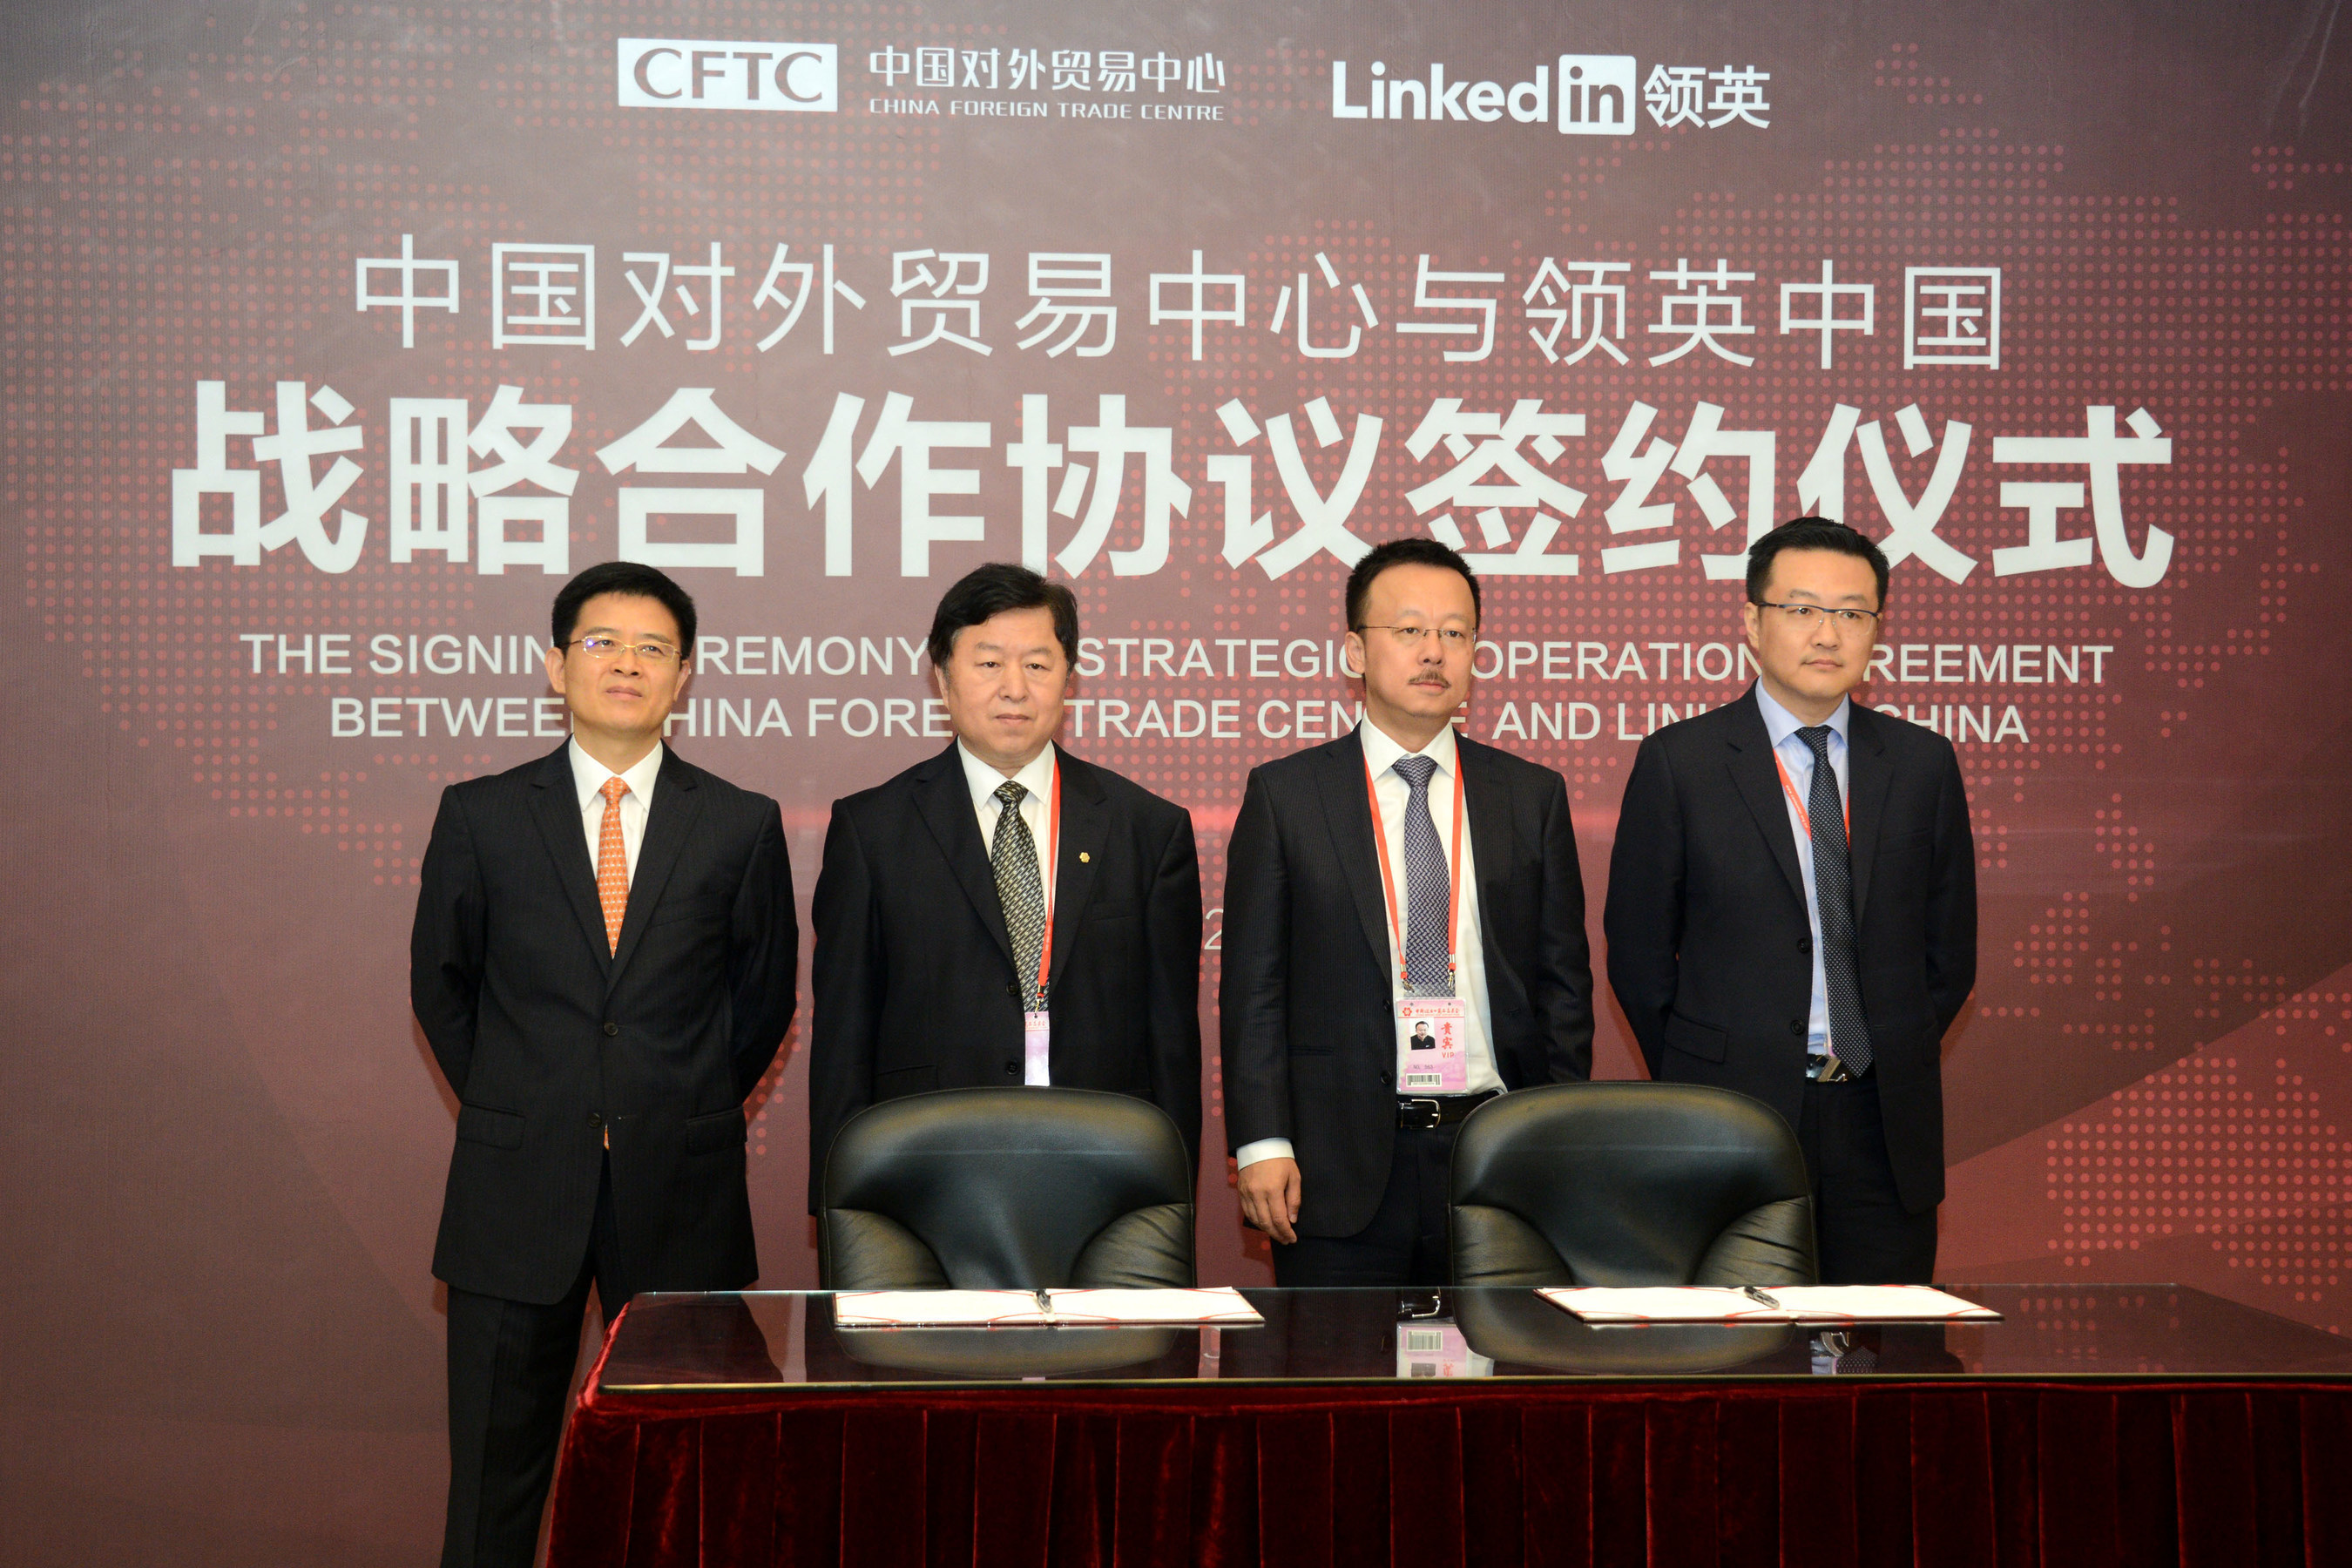 China Foreign Trade Centre concluded a cooperation agreement with LinkedIn China on April 25, 2016 at the 119th Canton Fair.